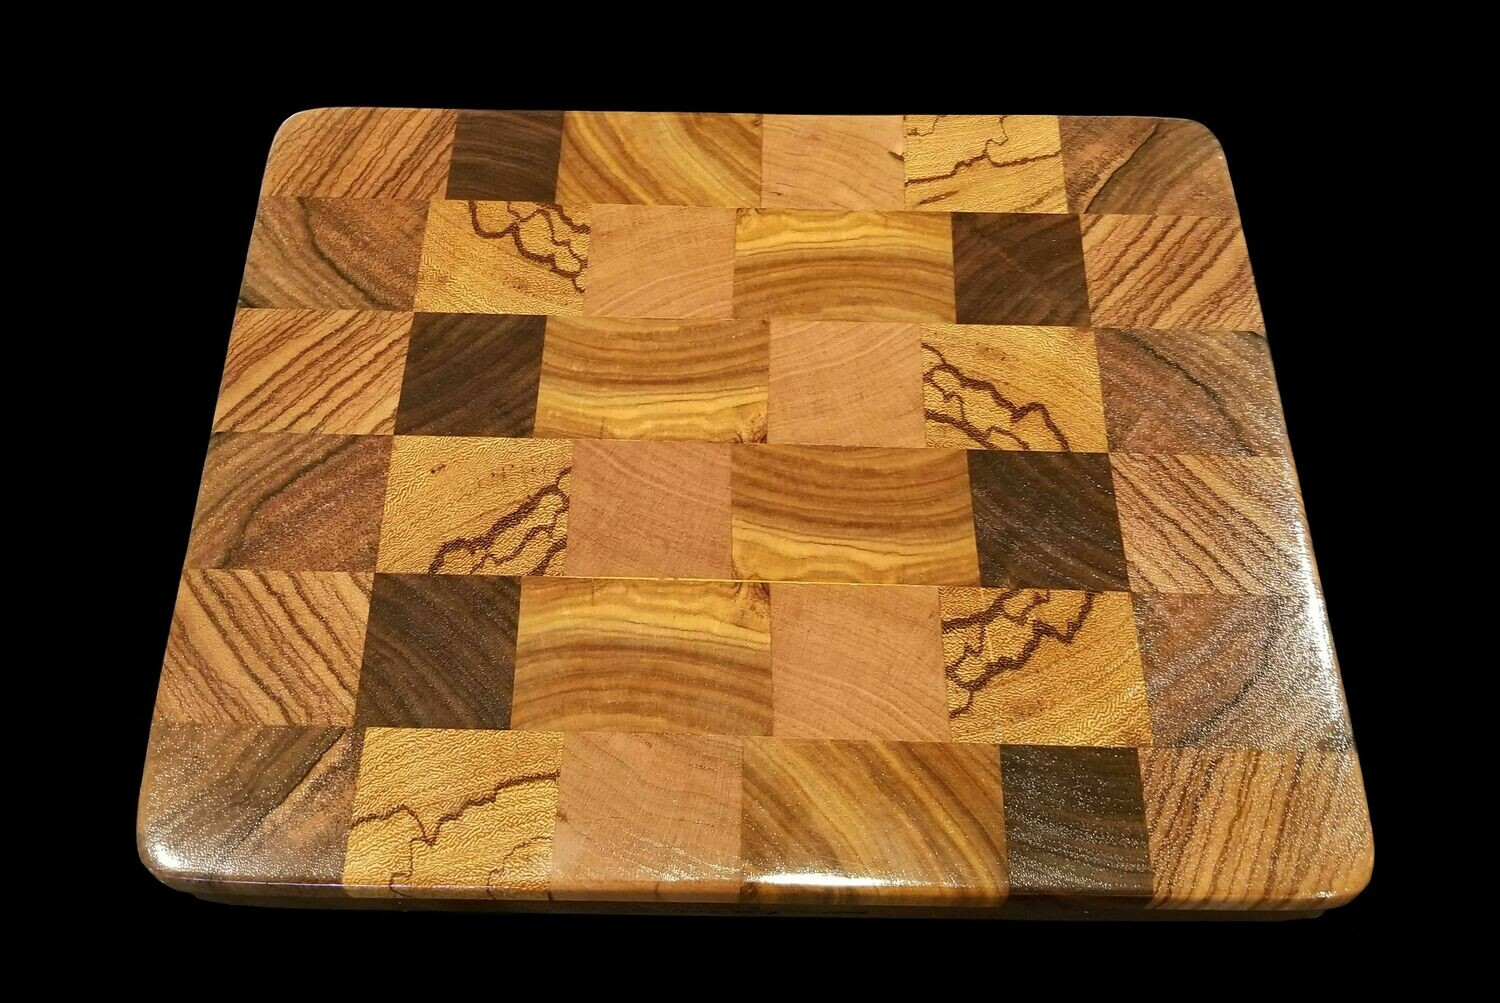 "Cutting Board, 2 Layer, End Grain, 11 3/4"" x 9 1/4"" x 1 1/4"" Thick"